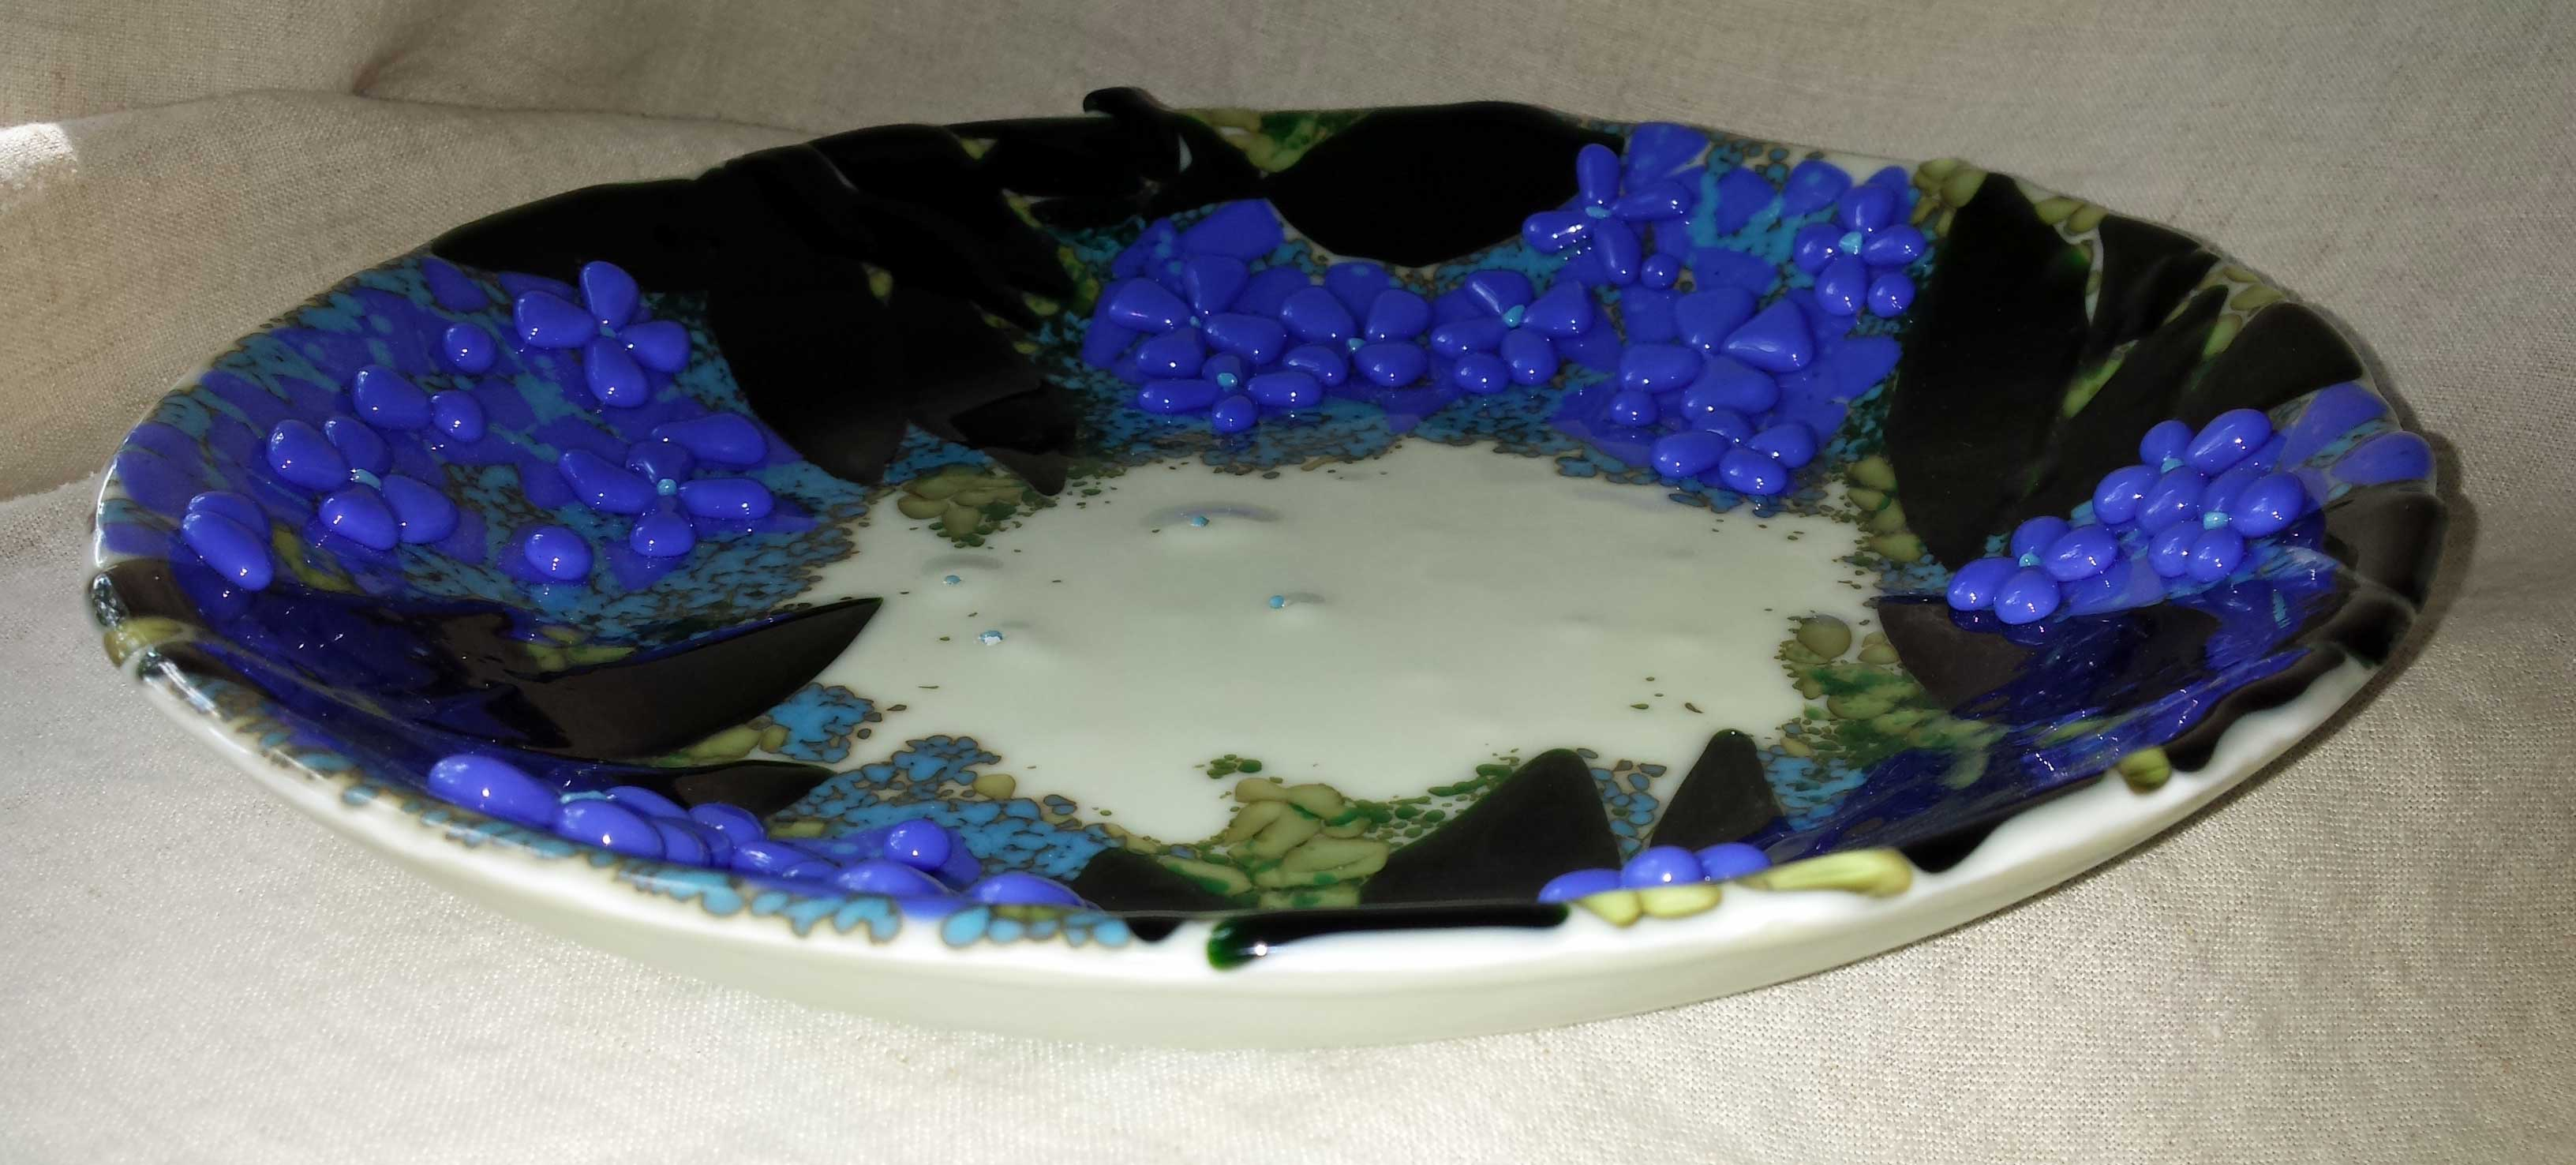 12 inch glass platter encircled by hydrangea